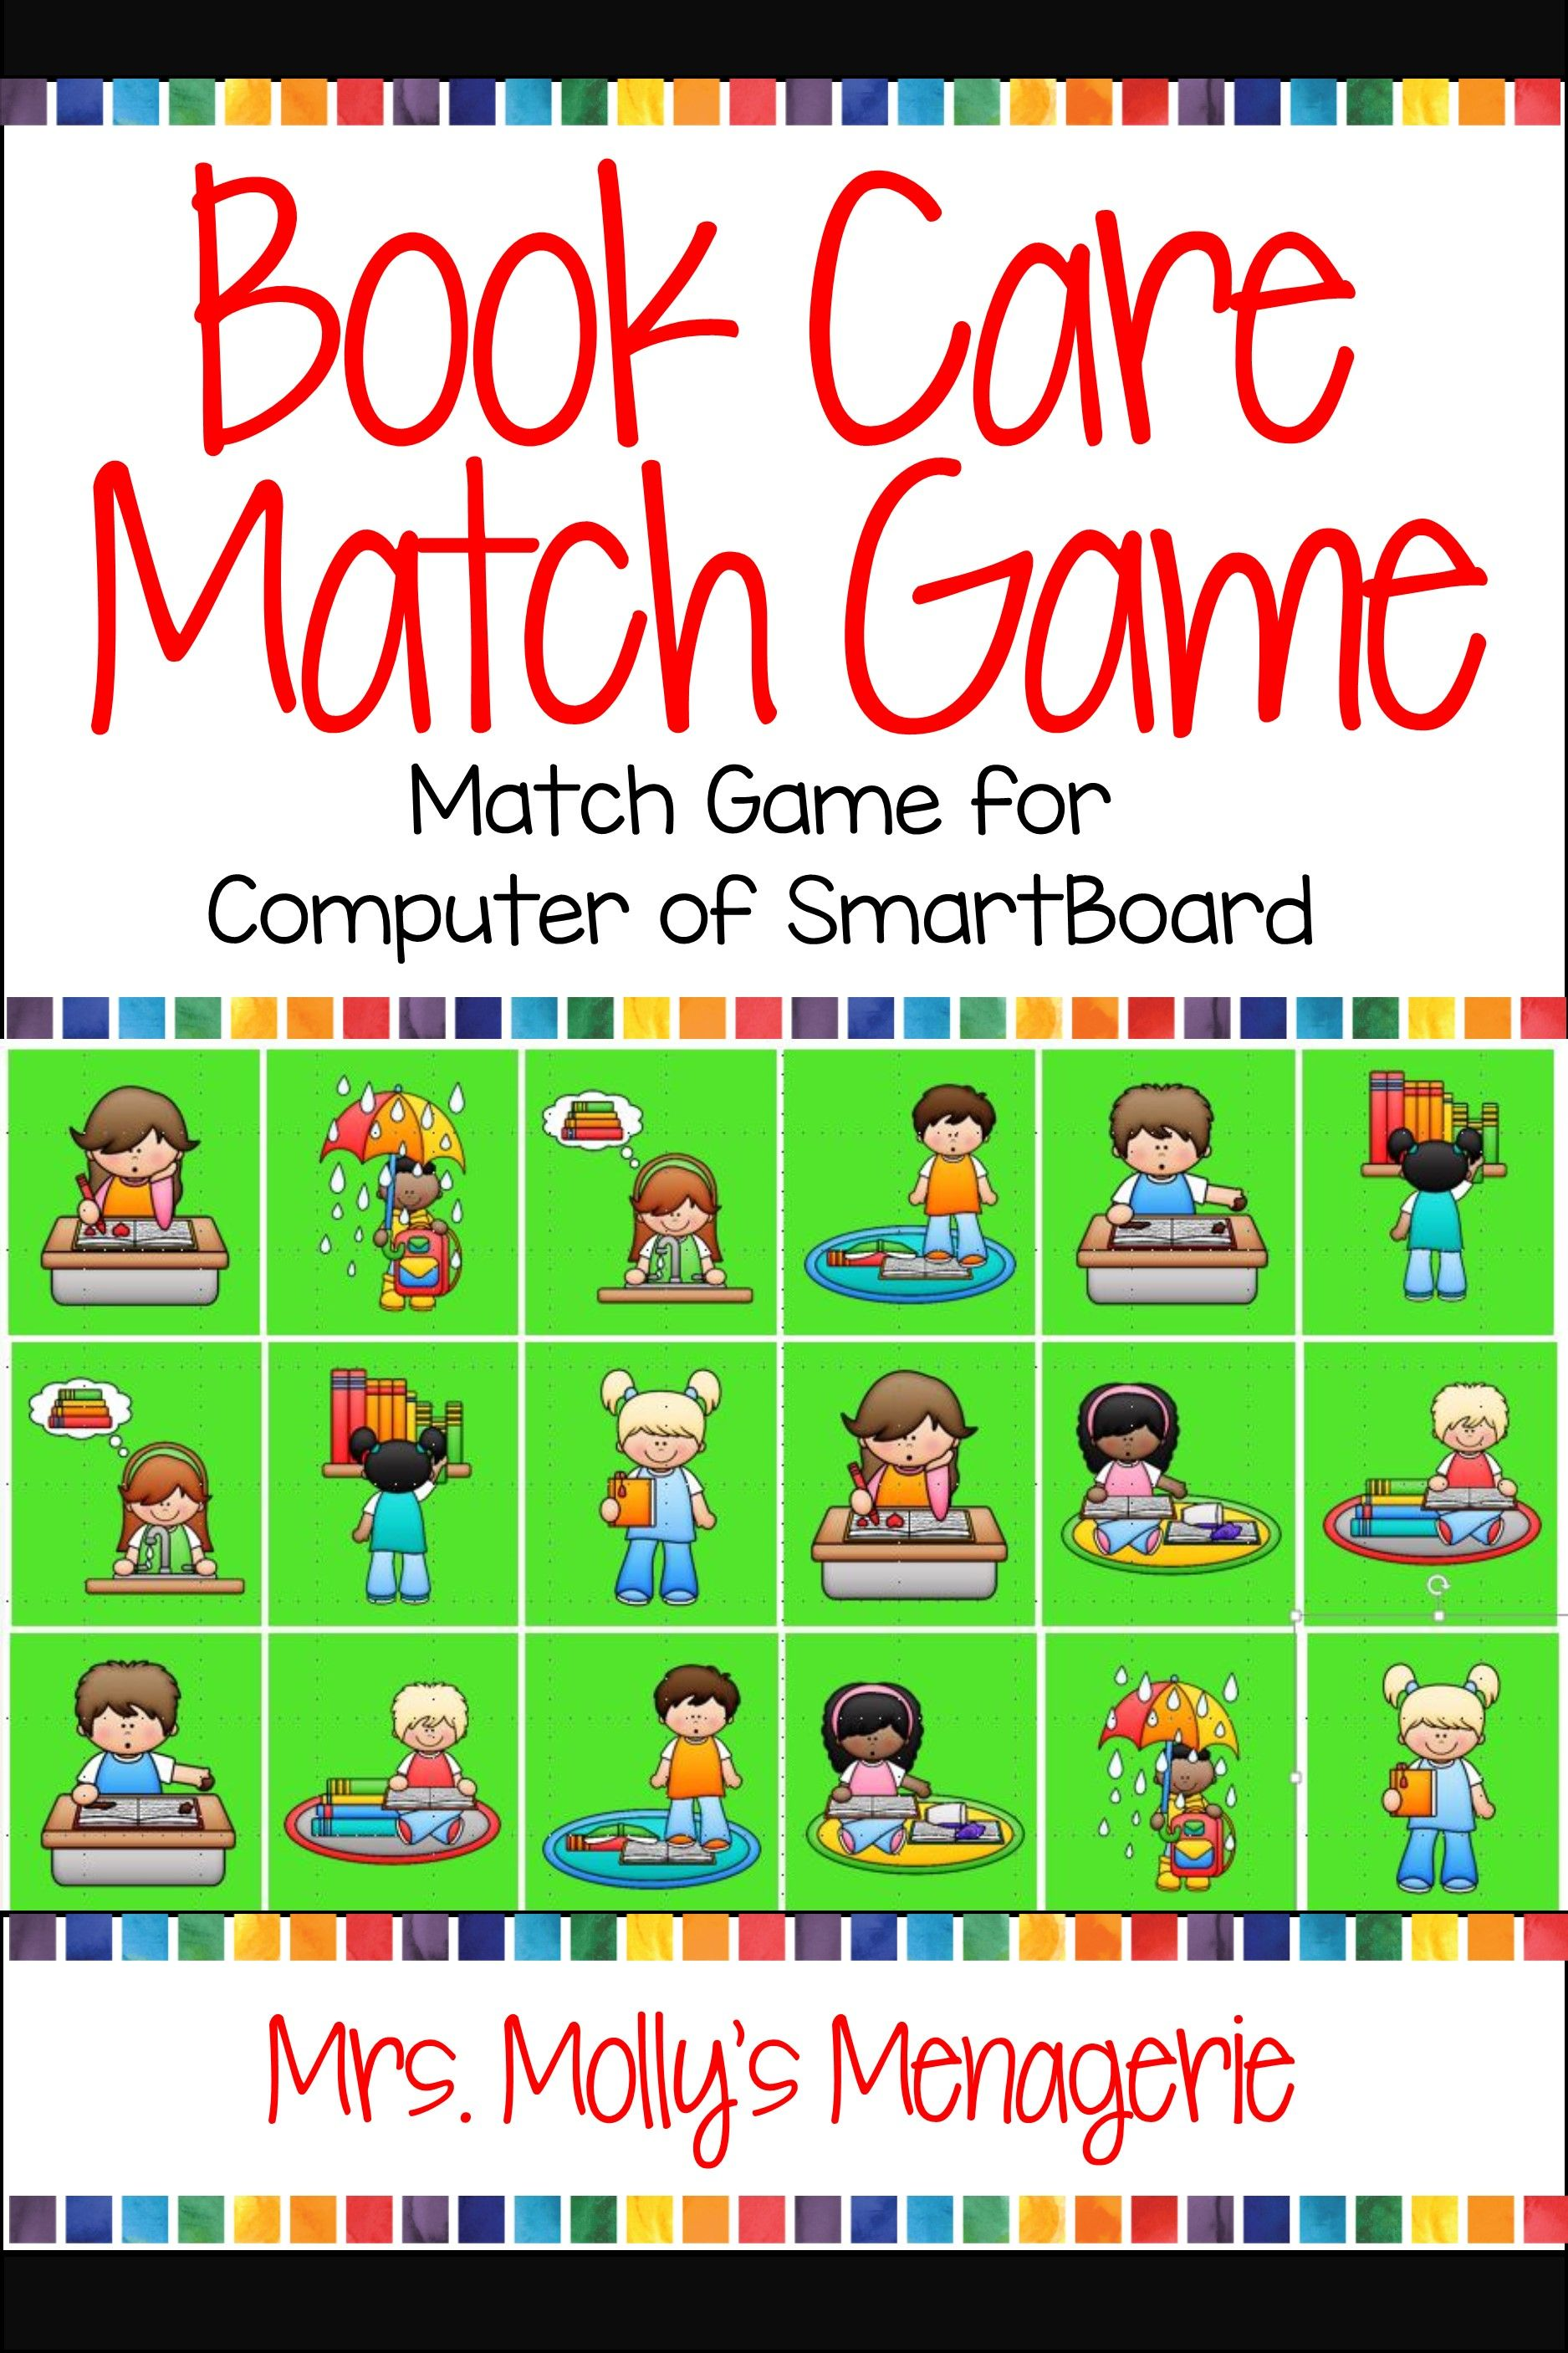 A great way to review book care using Technology. My